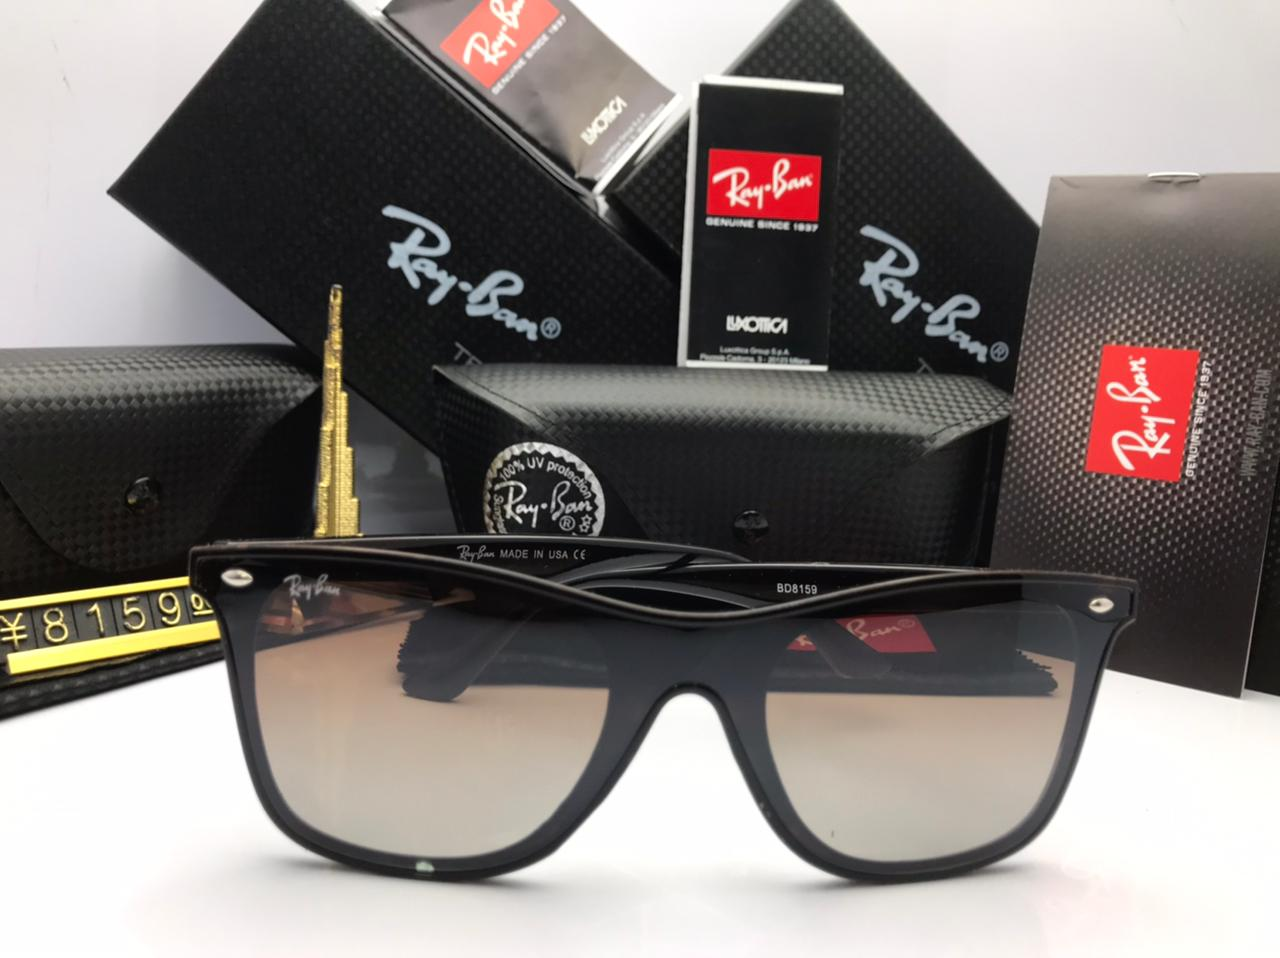 Rayban Wayfarer Polarized Sunglasses Unisex with Brand Box